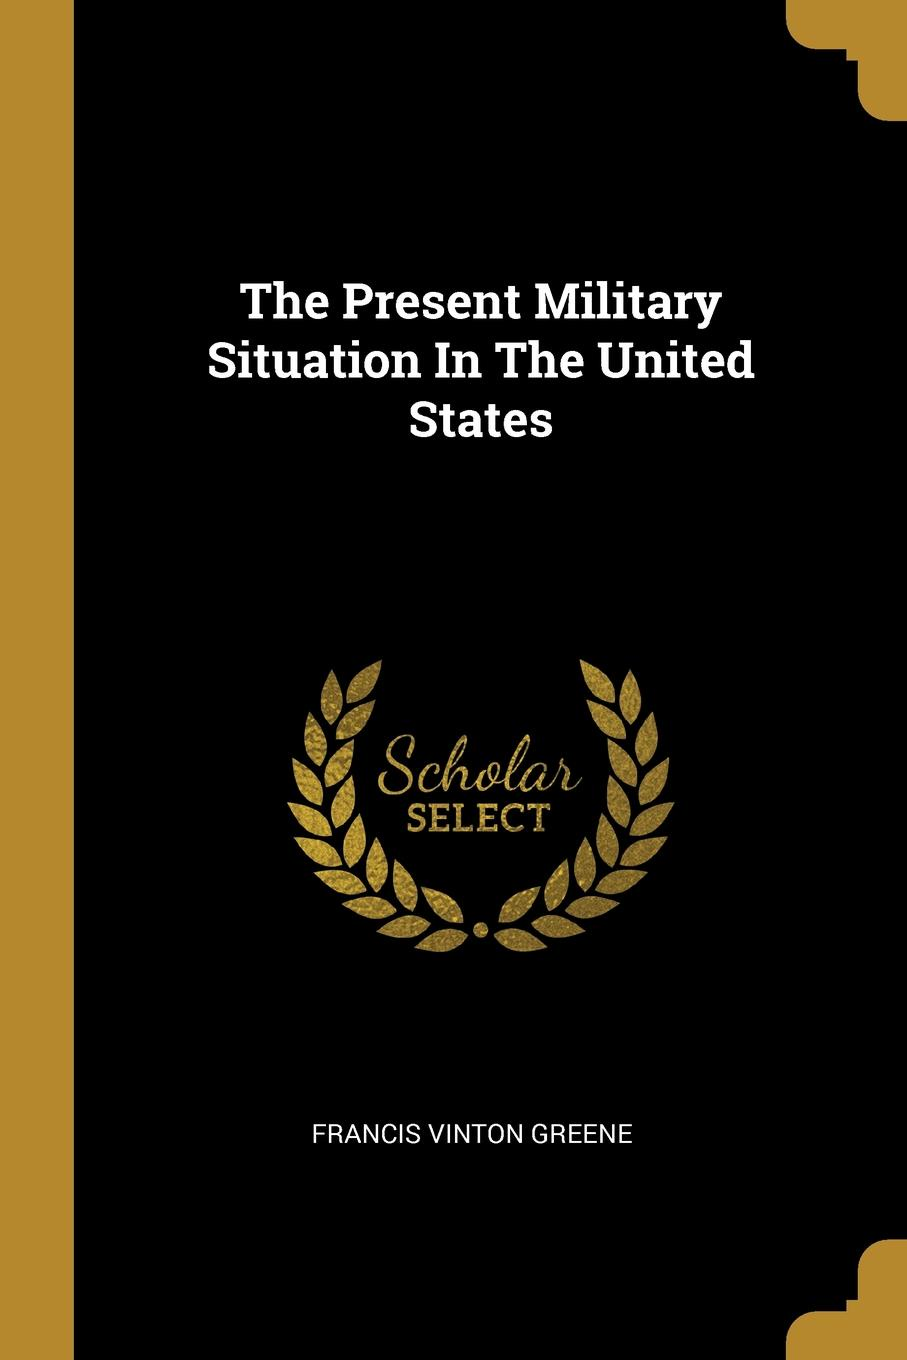 Francis Vinton Greene. The Present Military Situation In The United States